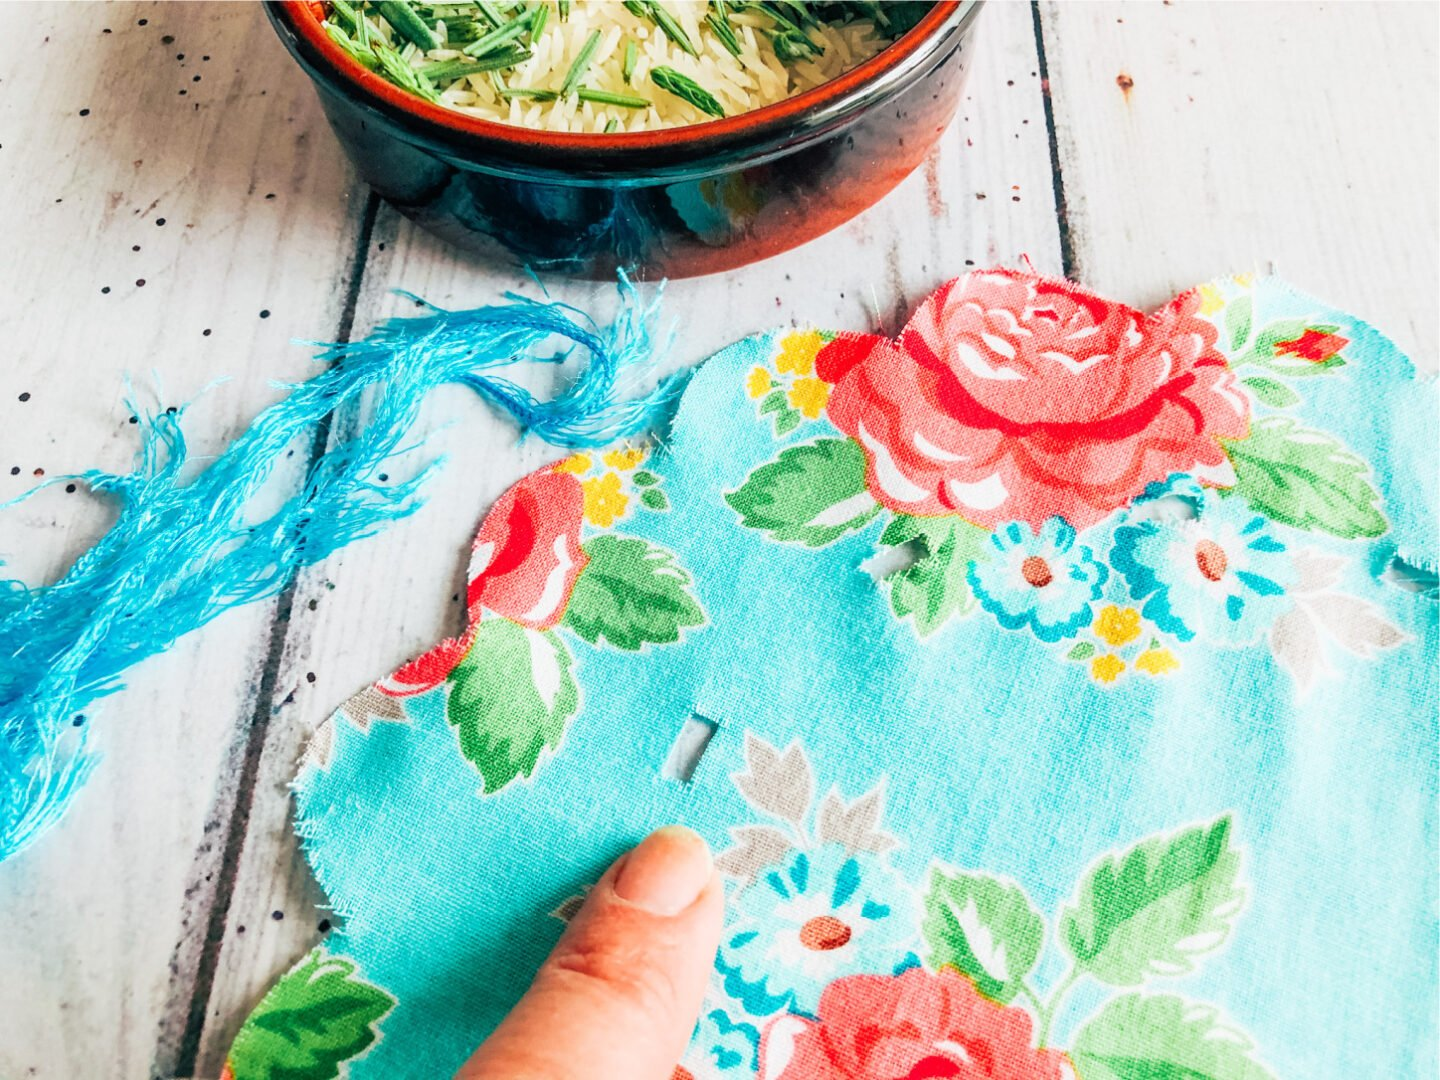 weave your ribbon in and out of the cuts to create your lavender bag